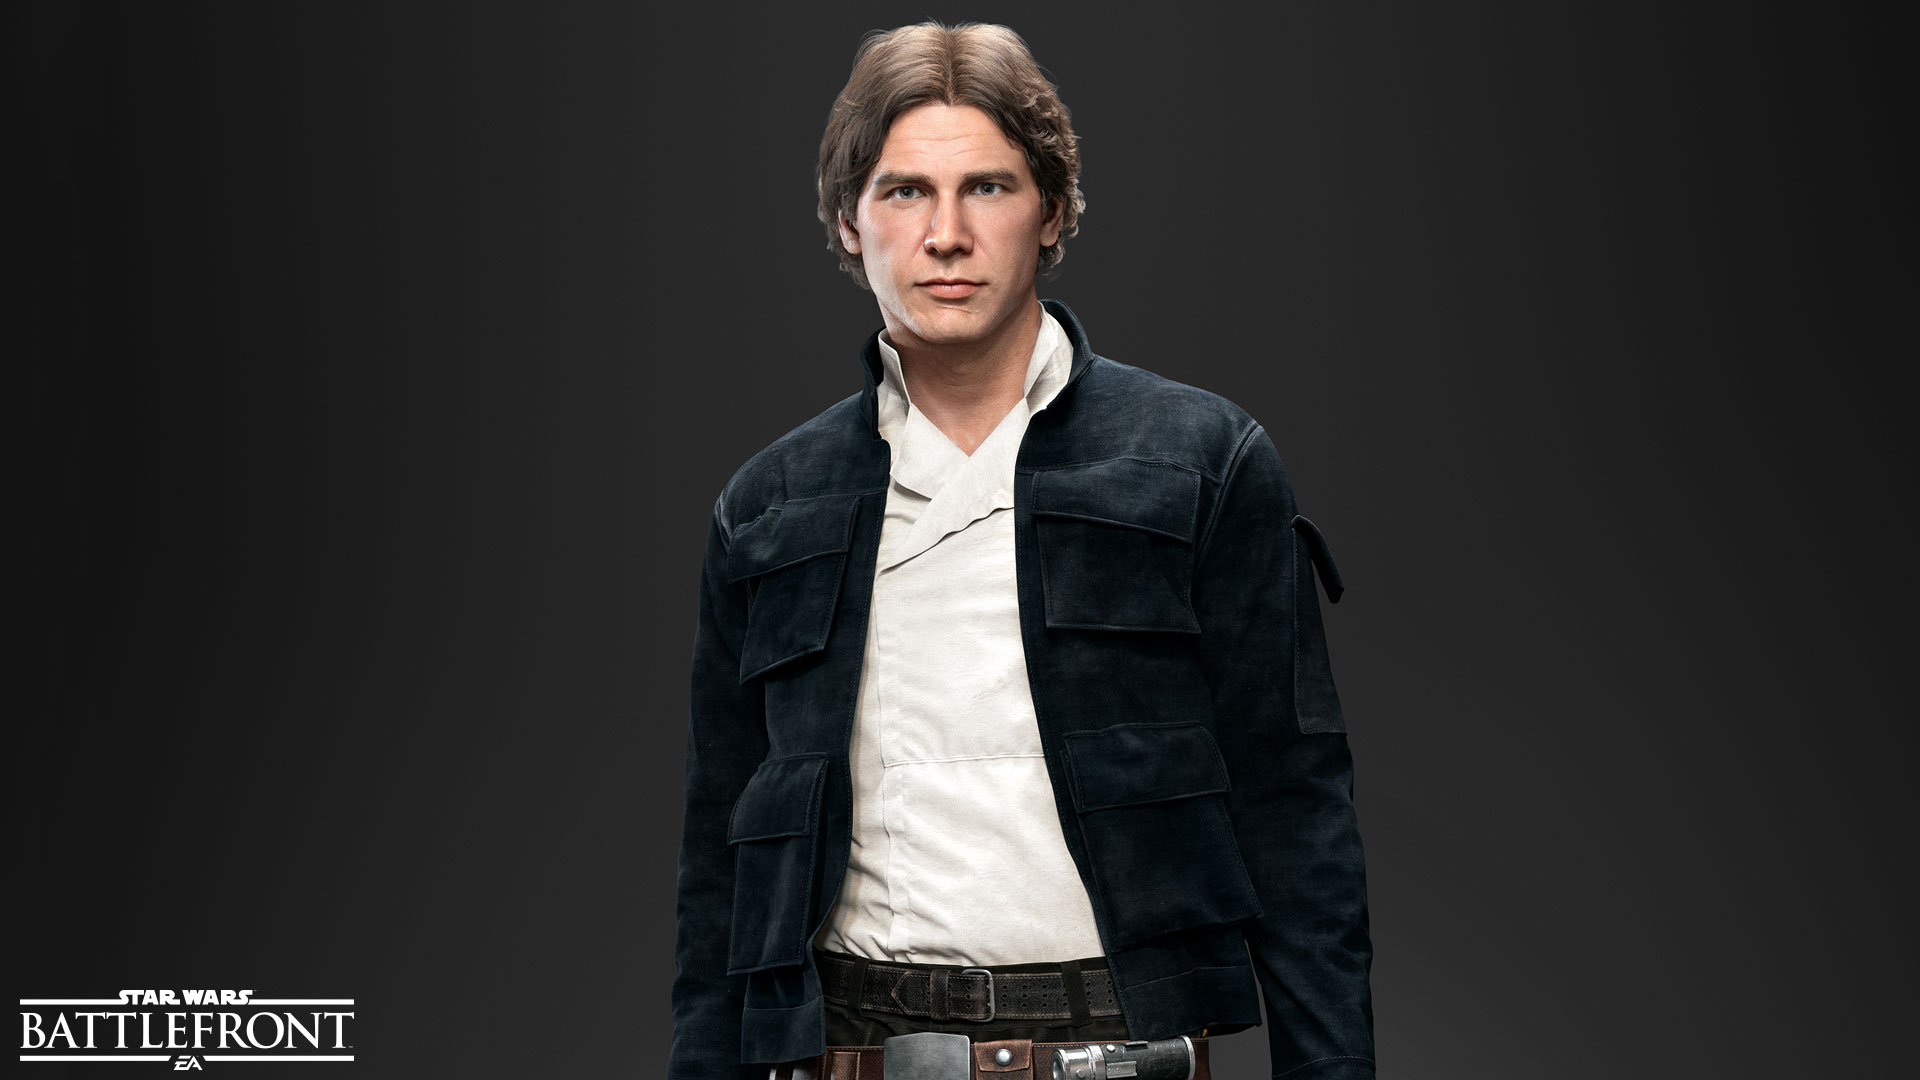 Star Wars Battlefront Heroes and Villains Revealed - 2015-10-20 12:25:22